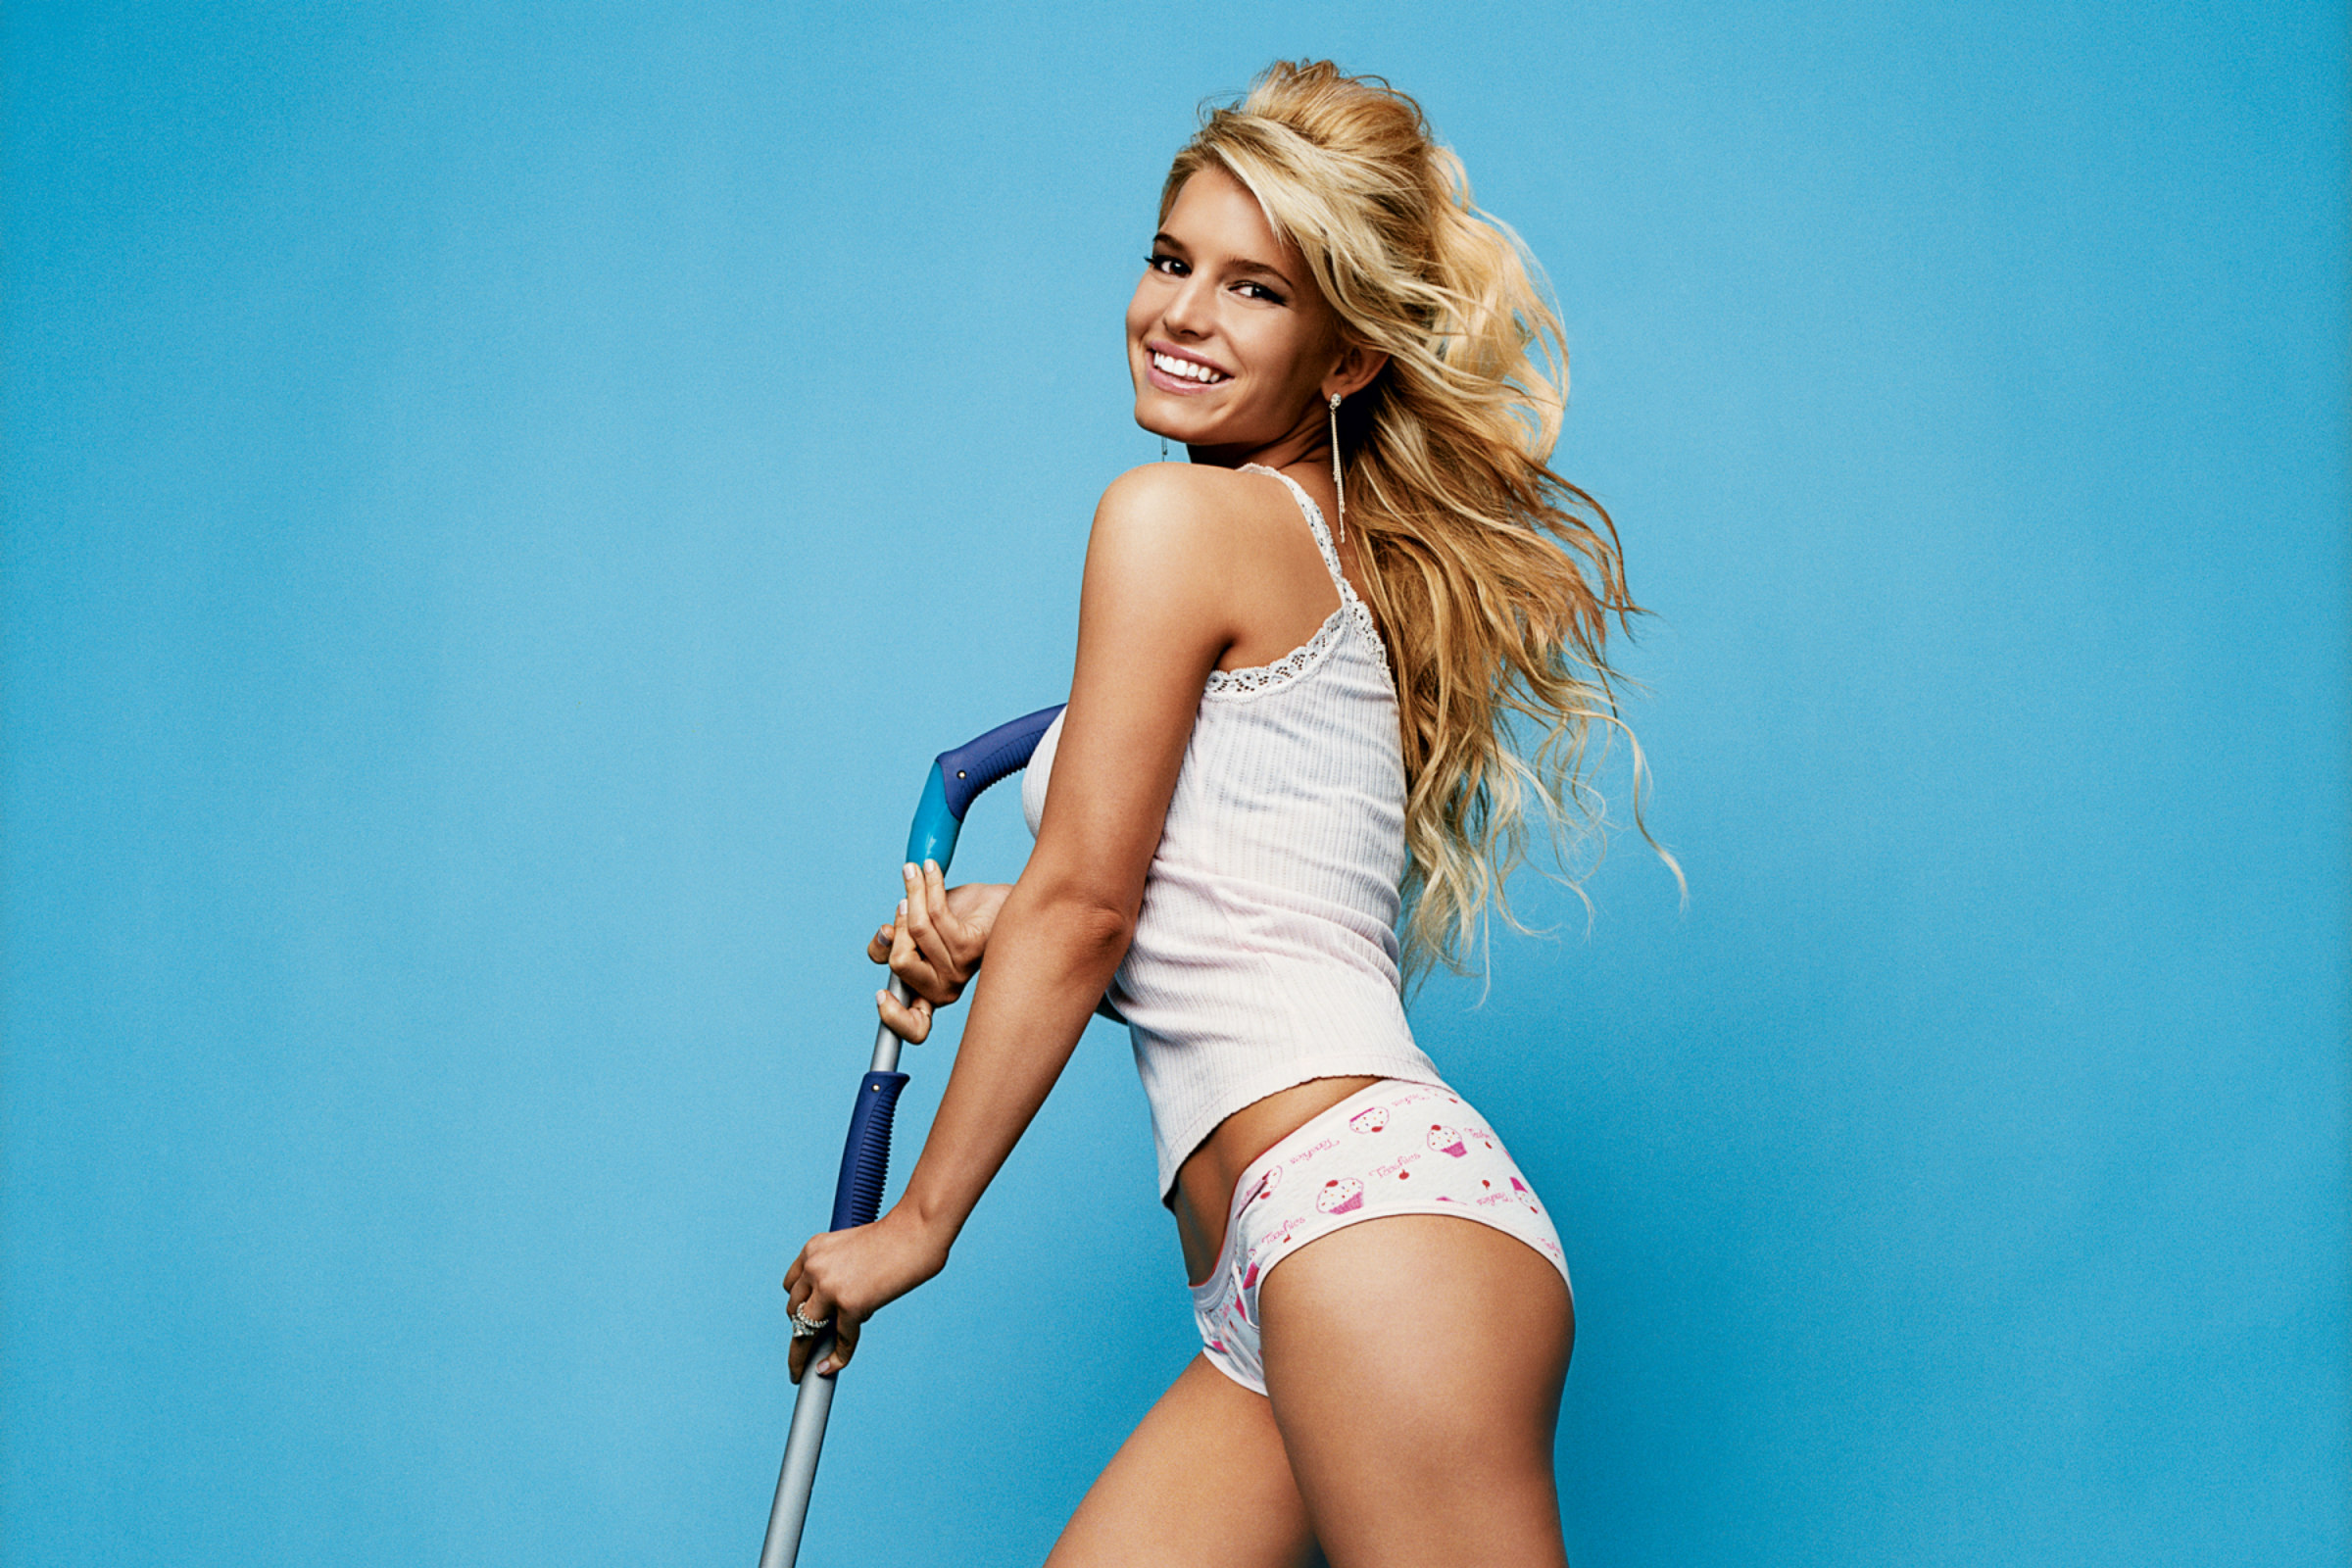 Jessica Simpson, a thin white woman with curly, blond hair, holds a mop against a light-blue background while wearing a thin white t-shirt